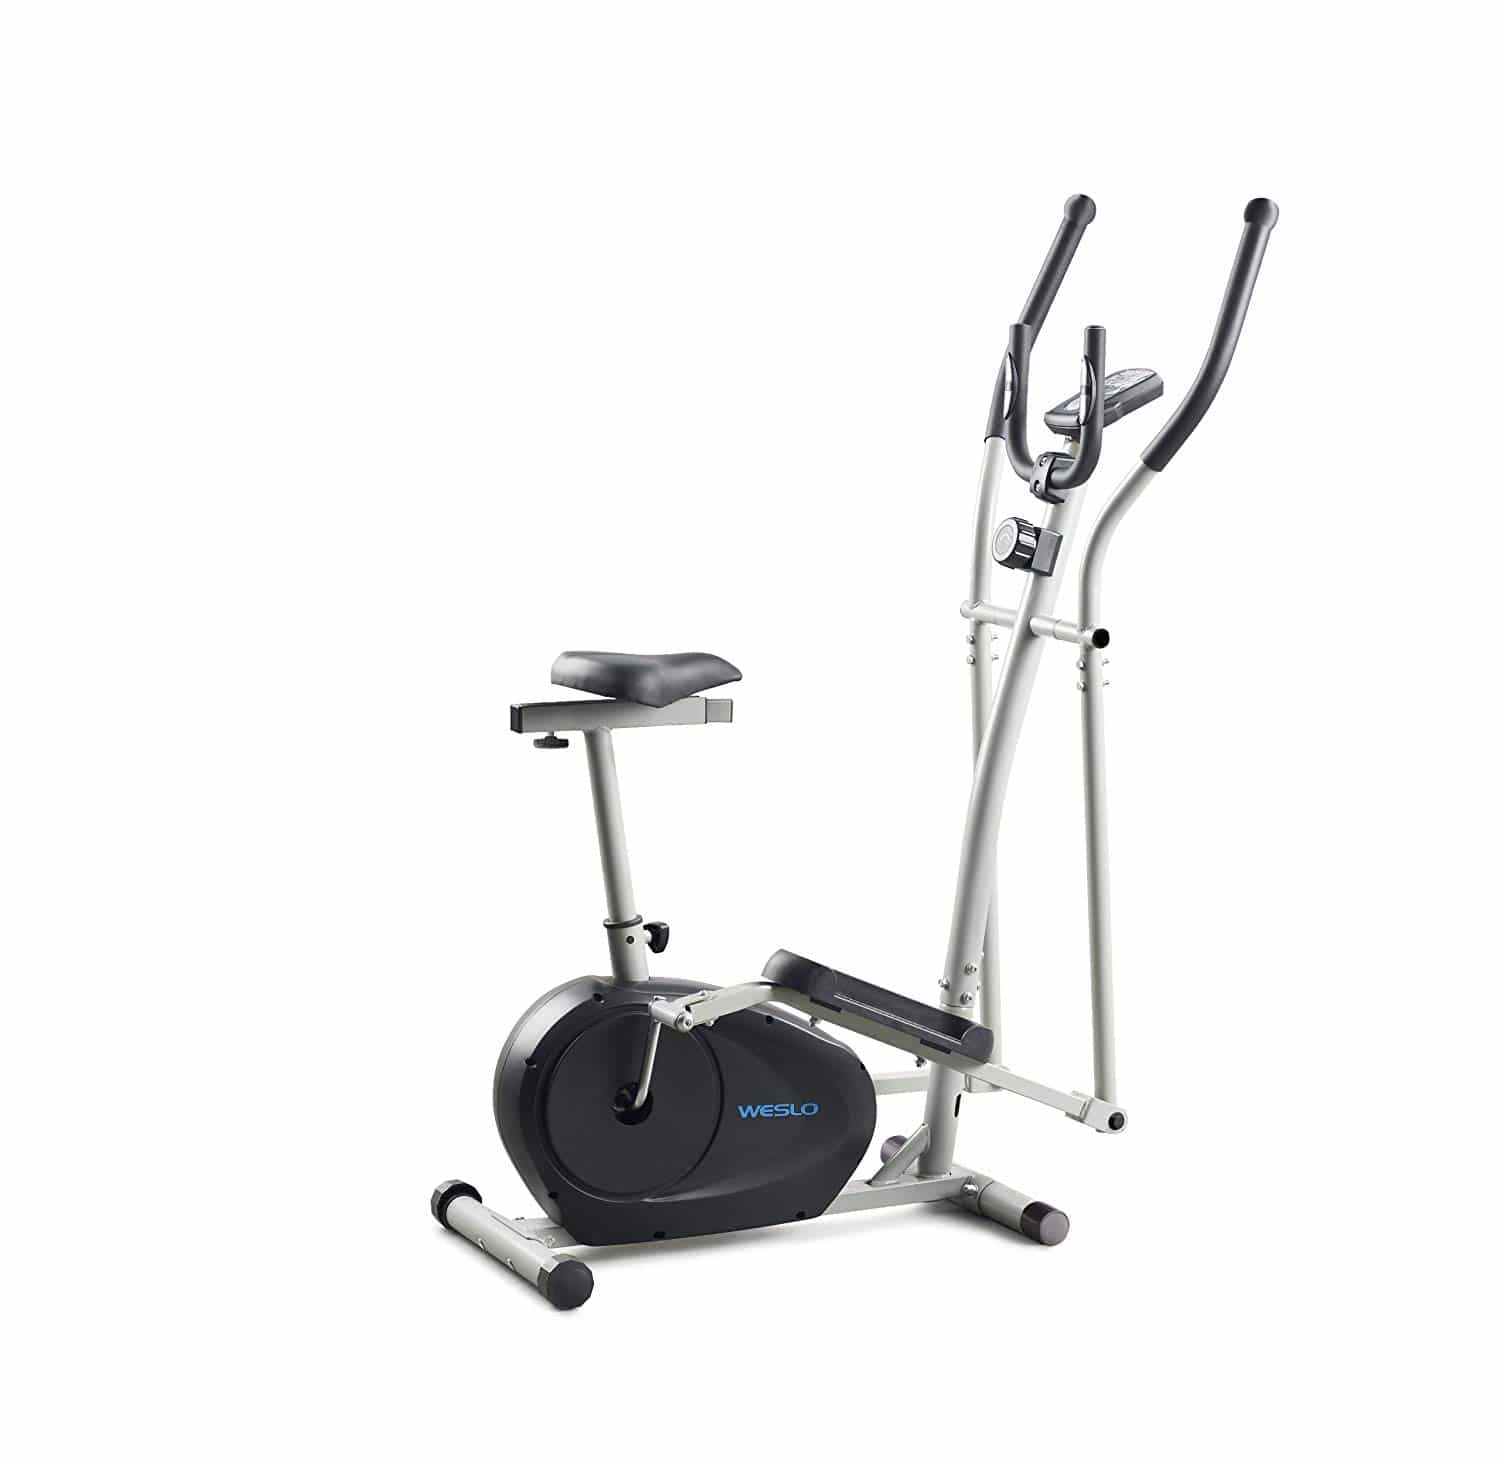 Elliptical Bike On Water: Weslo Cross Upright Cycle Review 2019